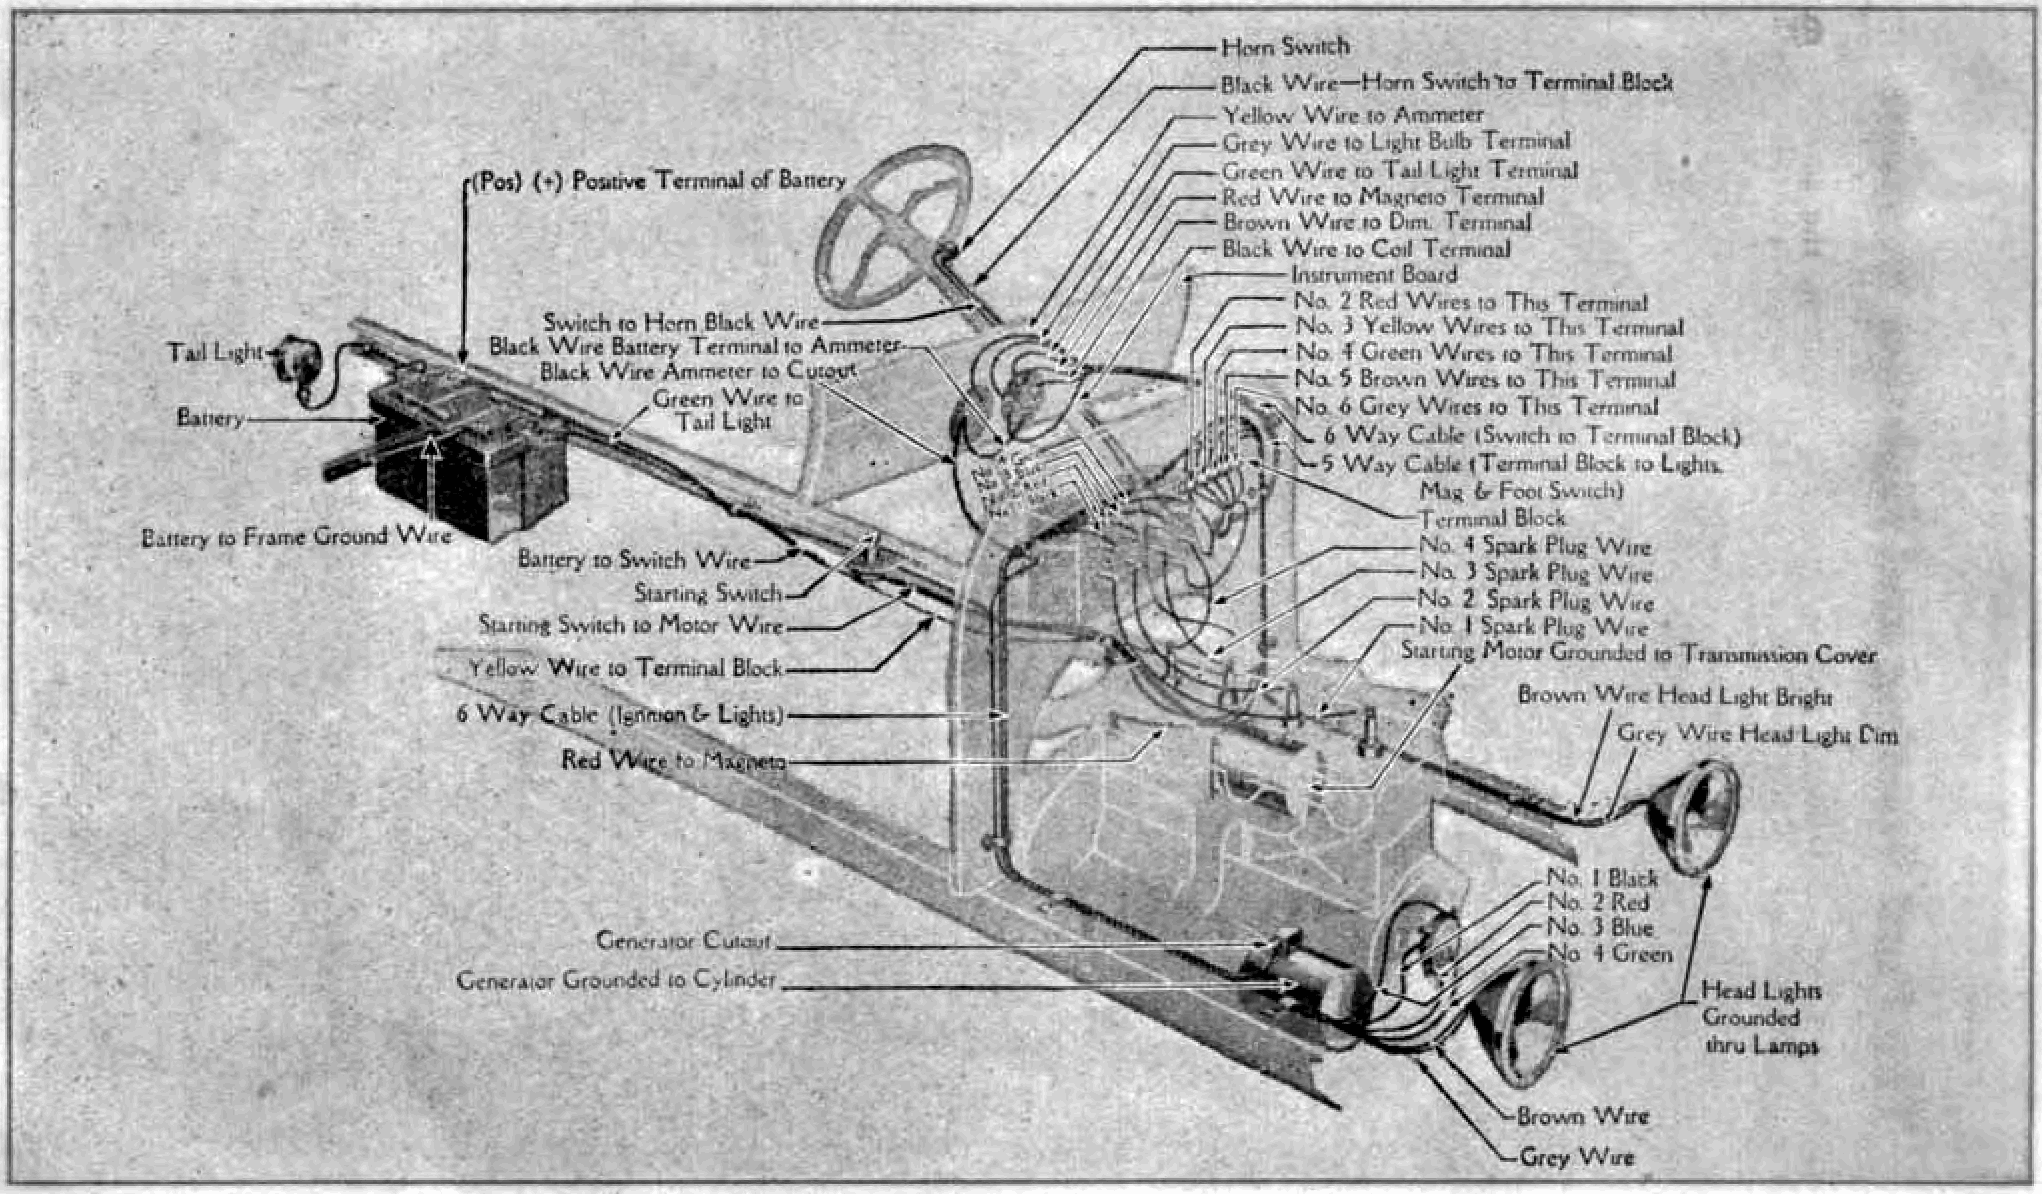 Ford_model_t_1919_d055_wiring_diagram_of_cars_equipped_with_a_starter 1929 ford wiring diagram wiring diagram shrutiradio model a ford wiring diagram with cowl lamps at readyjetset.co